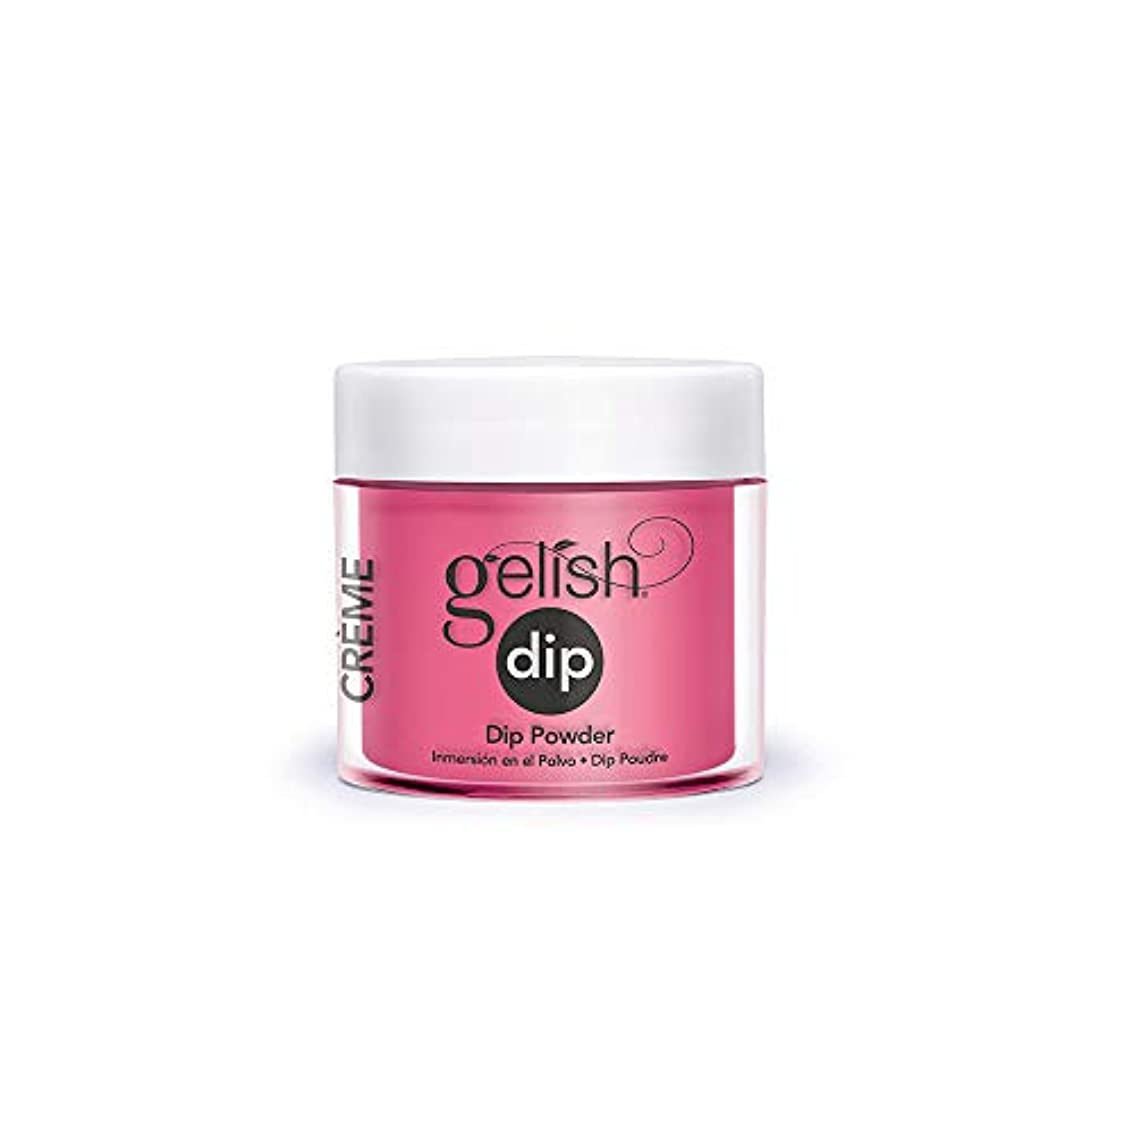 Harmony Gelish - Acrylic Dip Powder - Don't Pansy Around - 23g / 0.8oz